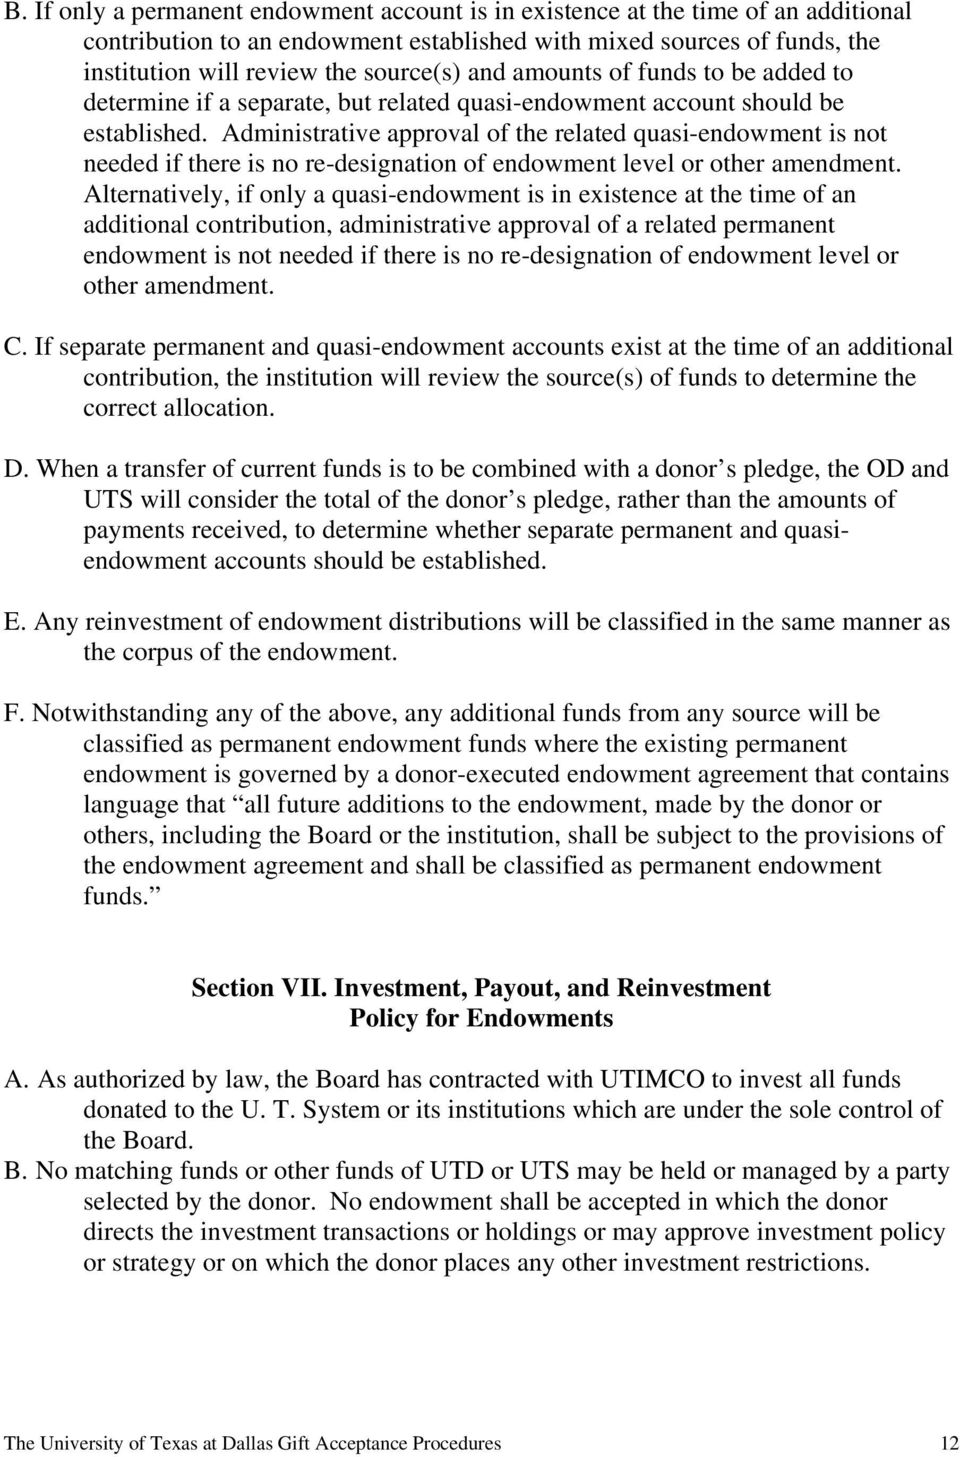 Administrative approval of the related quasi-endowment is not needed if there is no re-designation of endowment level or other amendment.